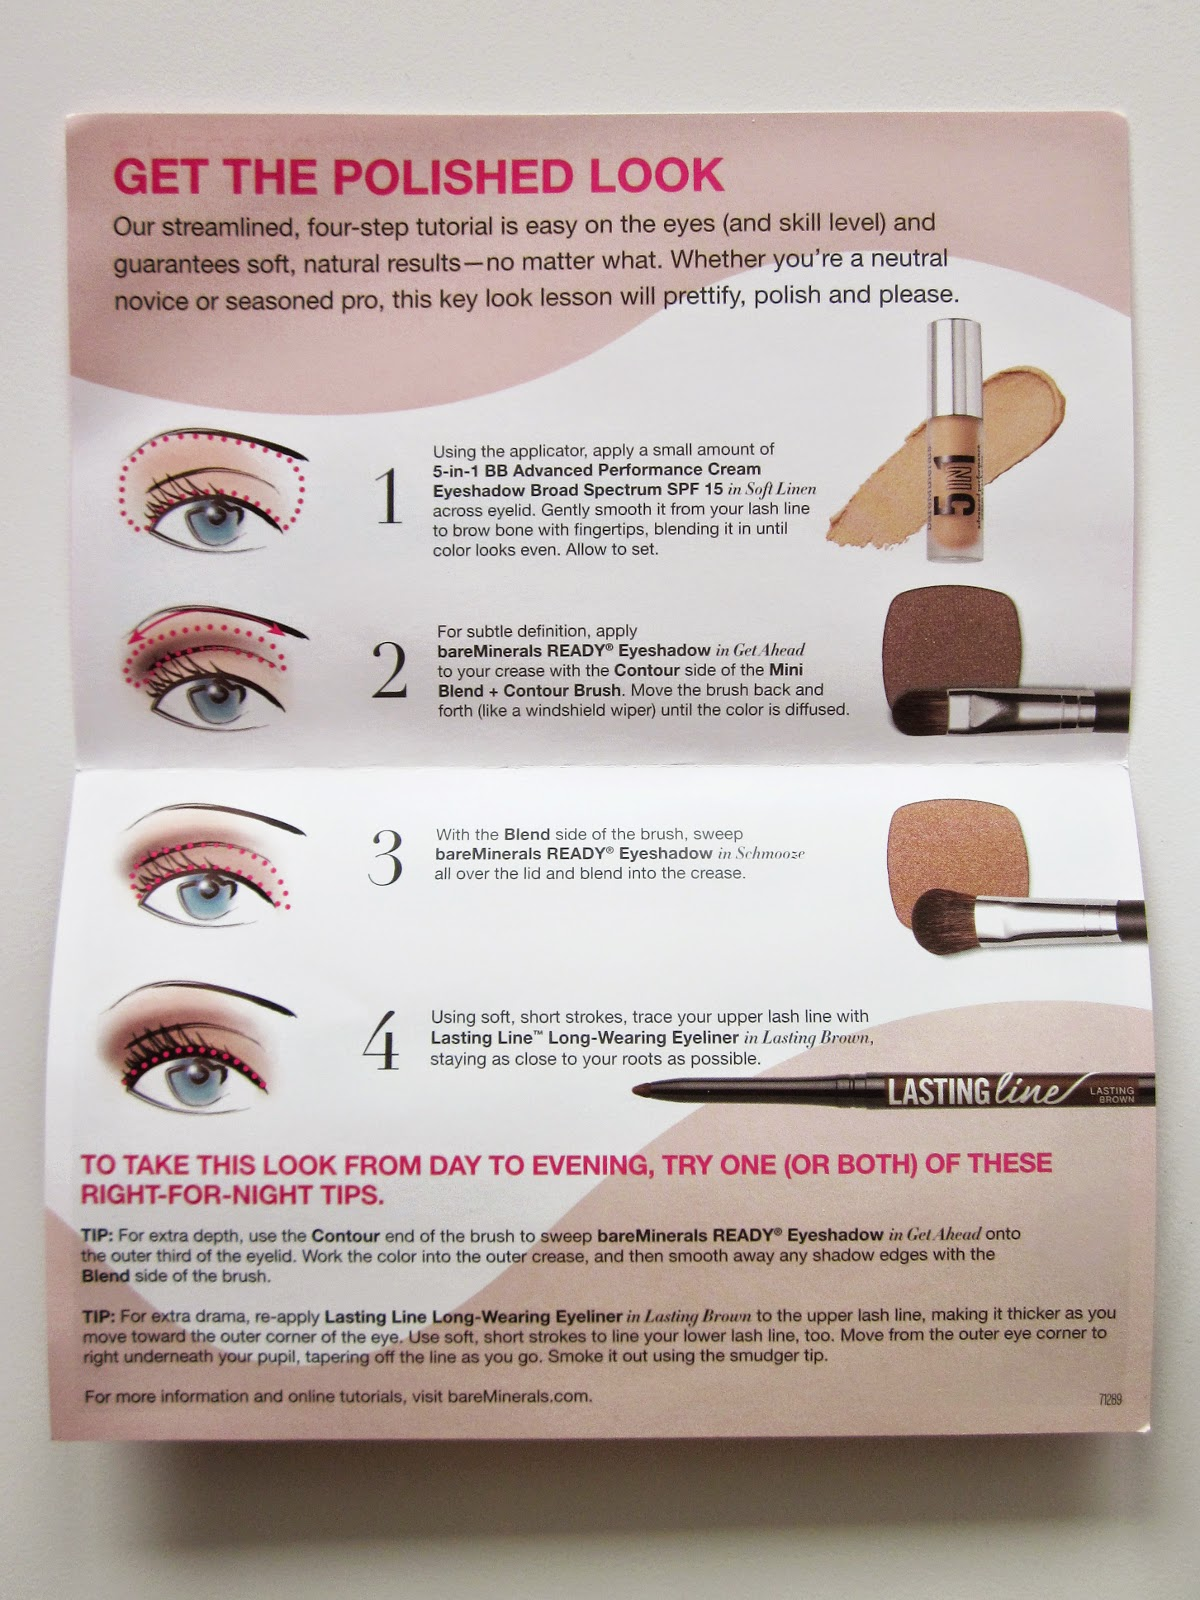 Today I Want To Share The Most Recent Addition To My Neutral Makeup: The  Limited Edition Bareminerals Bare Tutorials Neutral Eyes Set